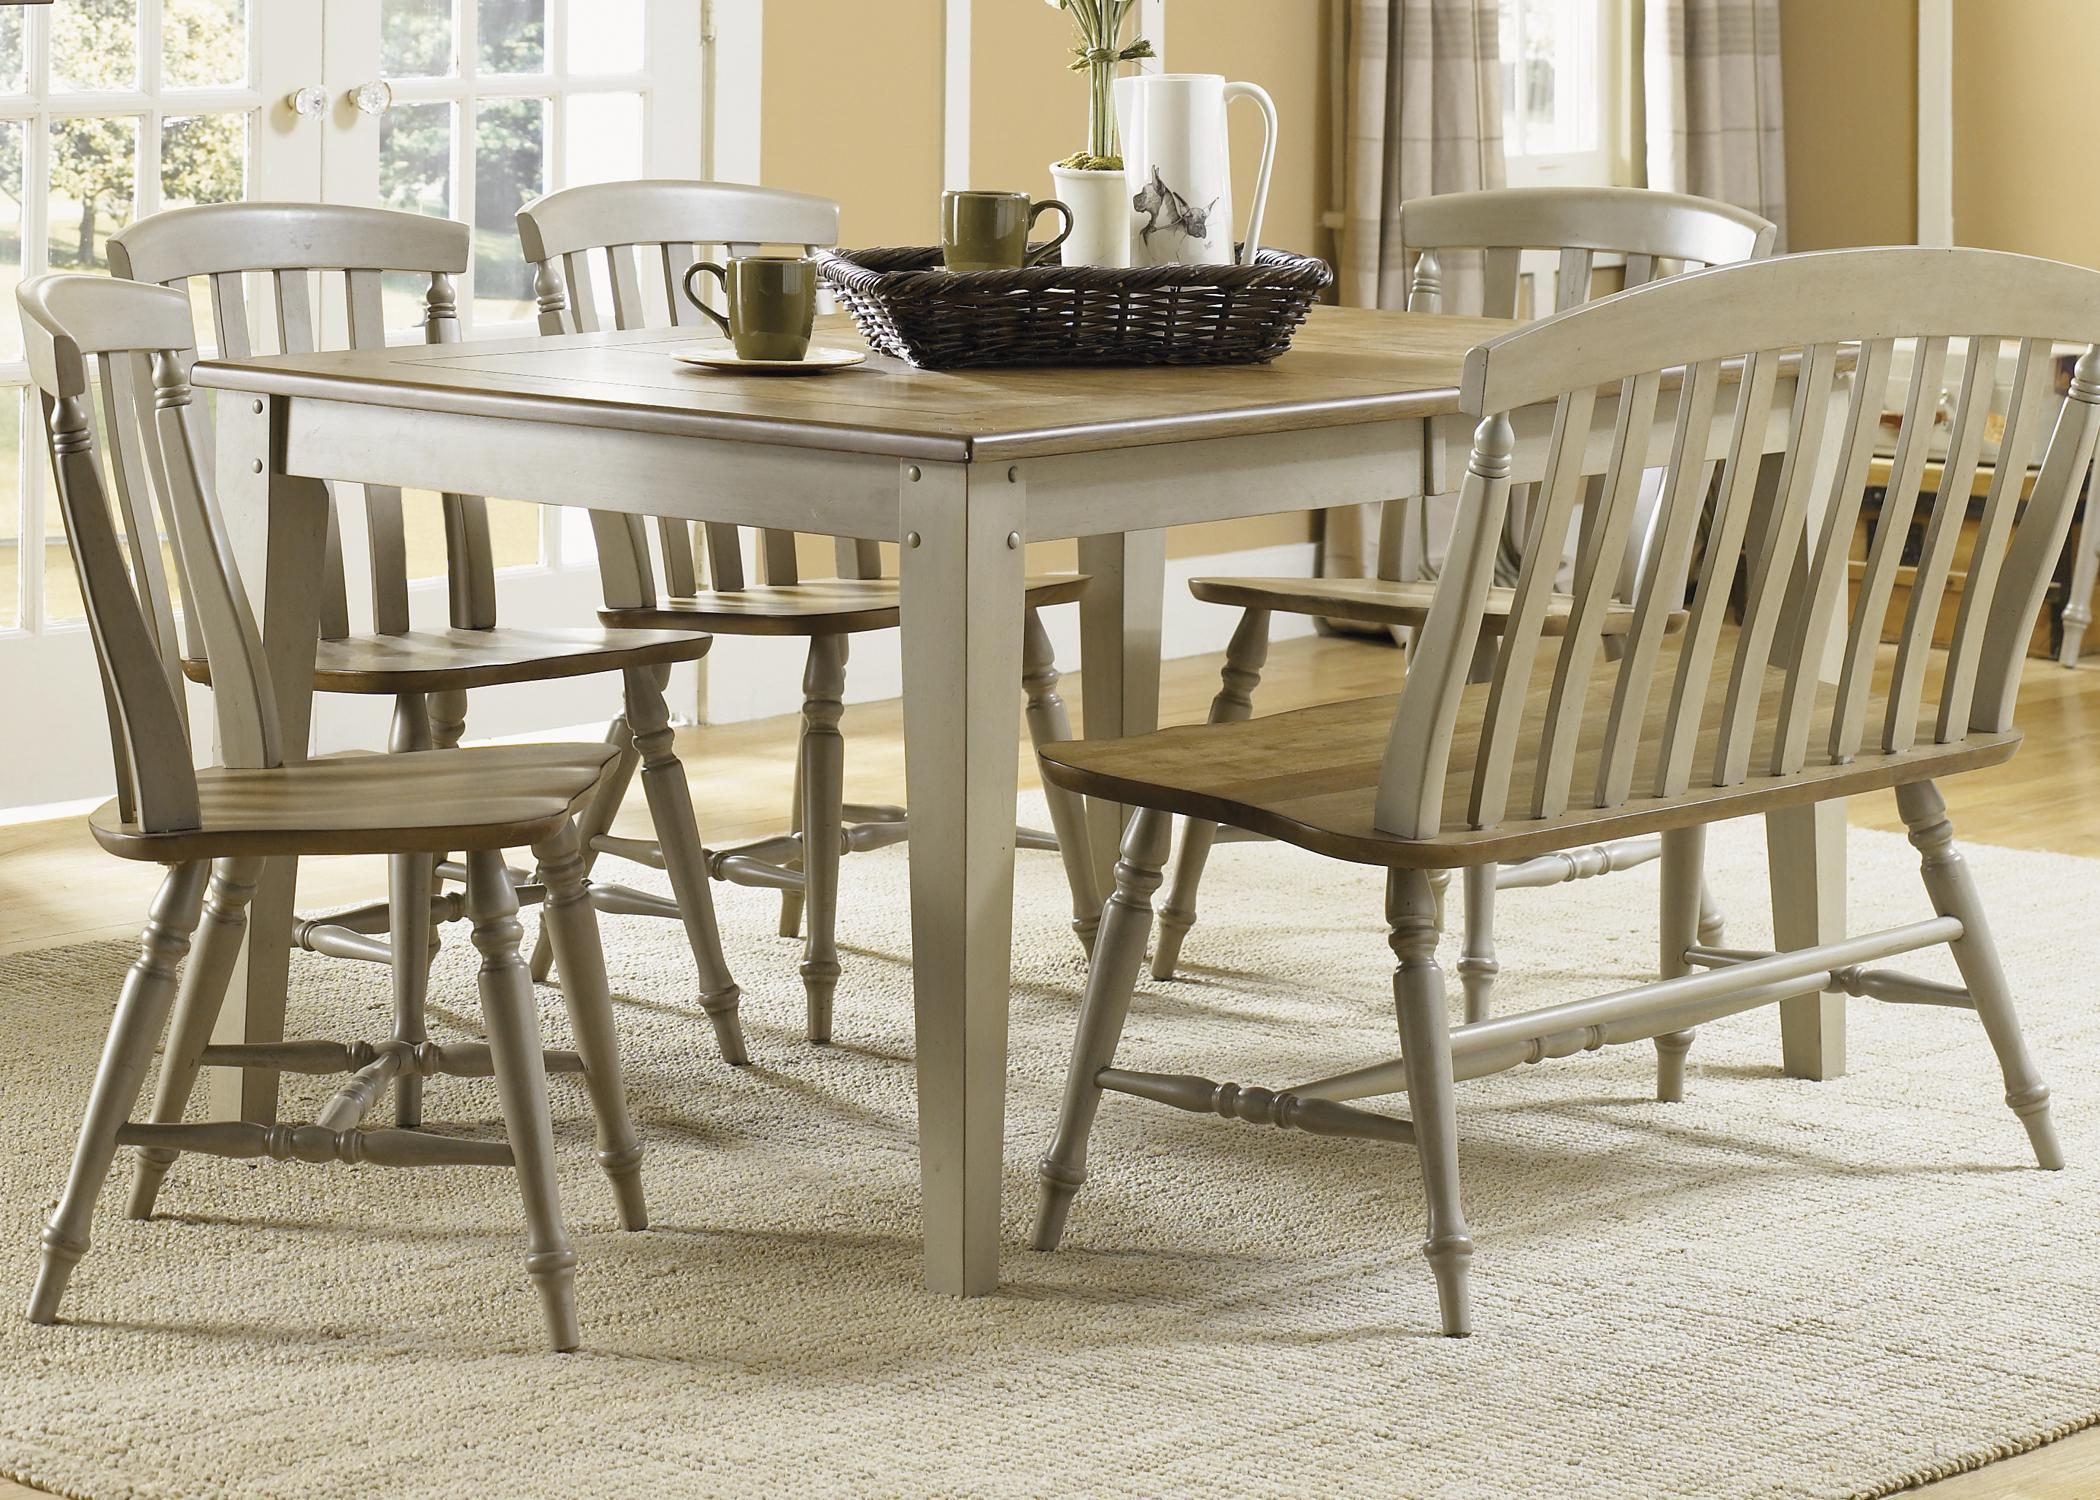 al s chairs and tables top for pc gaming liberty furniture fresco six piece dining table set